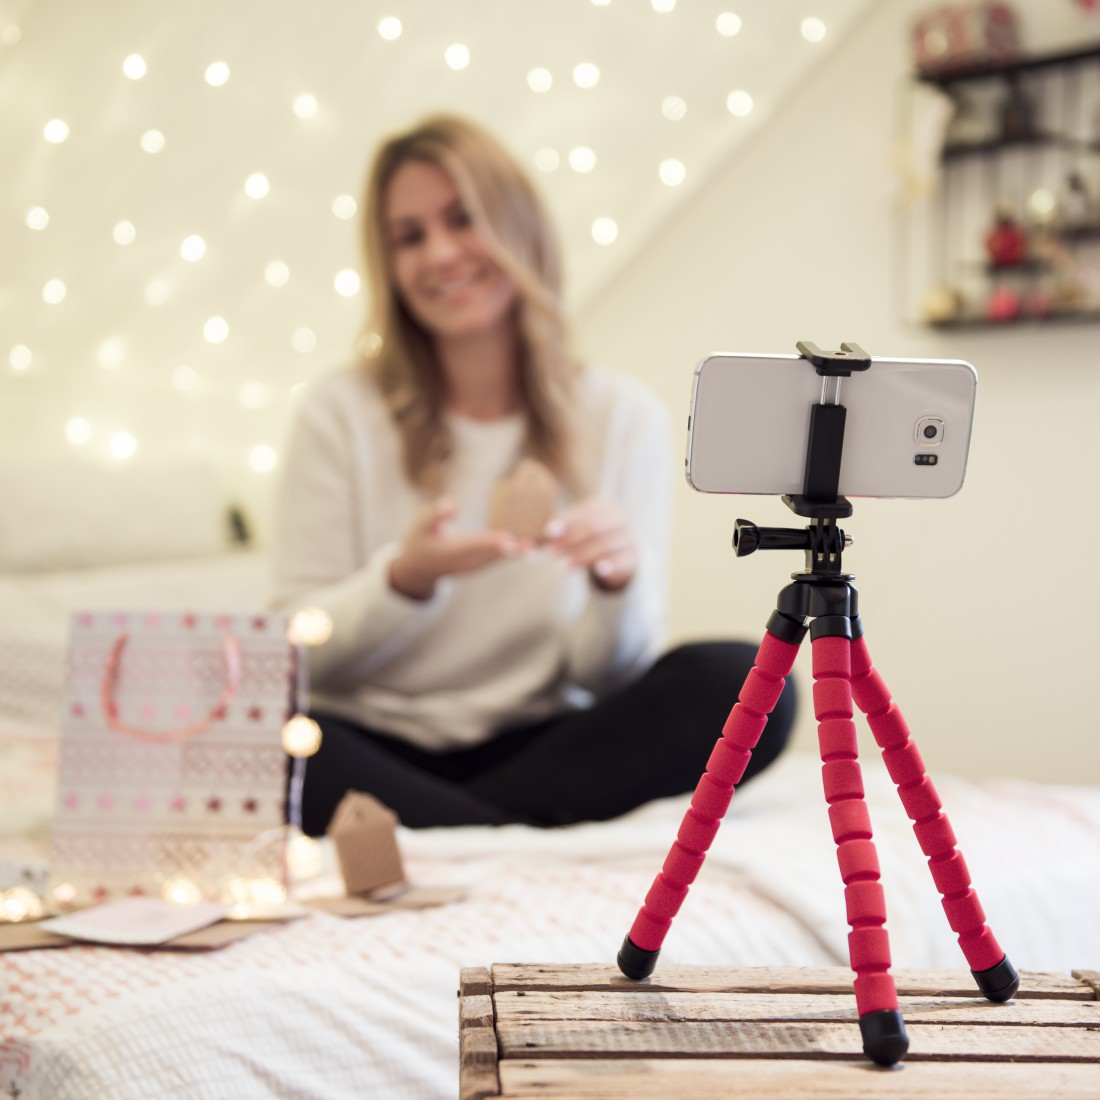 awx3 High-Res Appliance 3 - Hama, Flex Tripod for Smartphone and GoPro, 26 cm, red